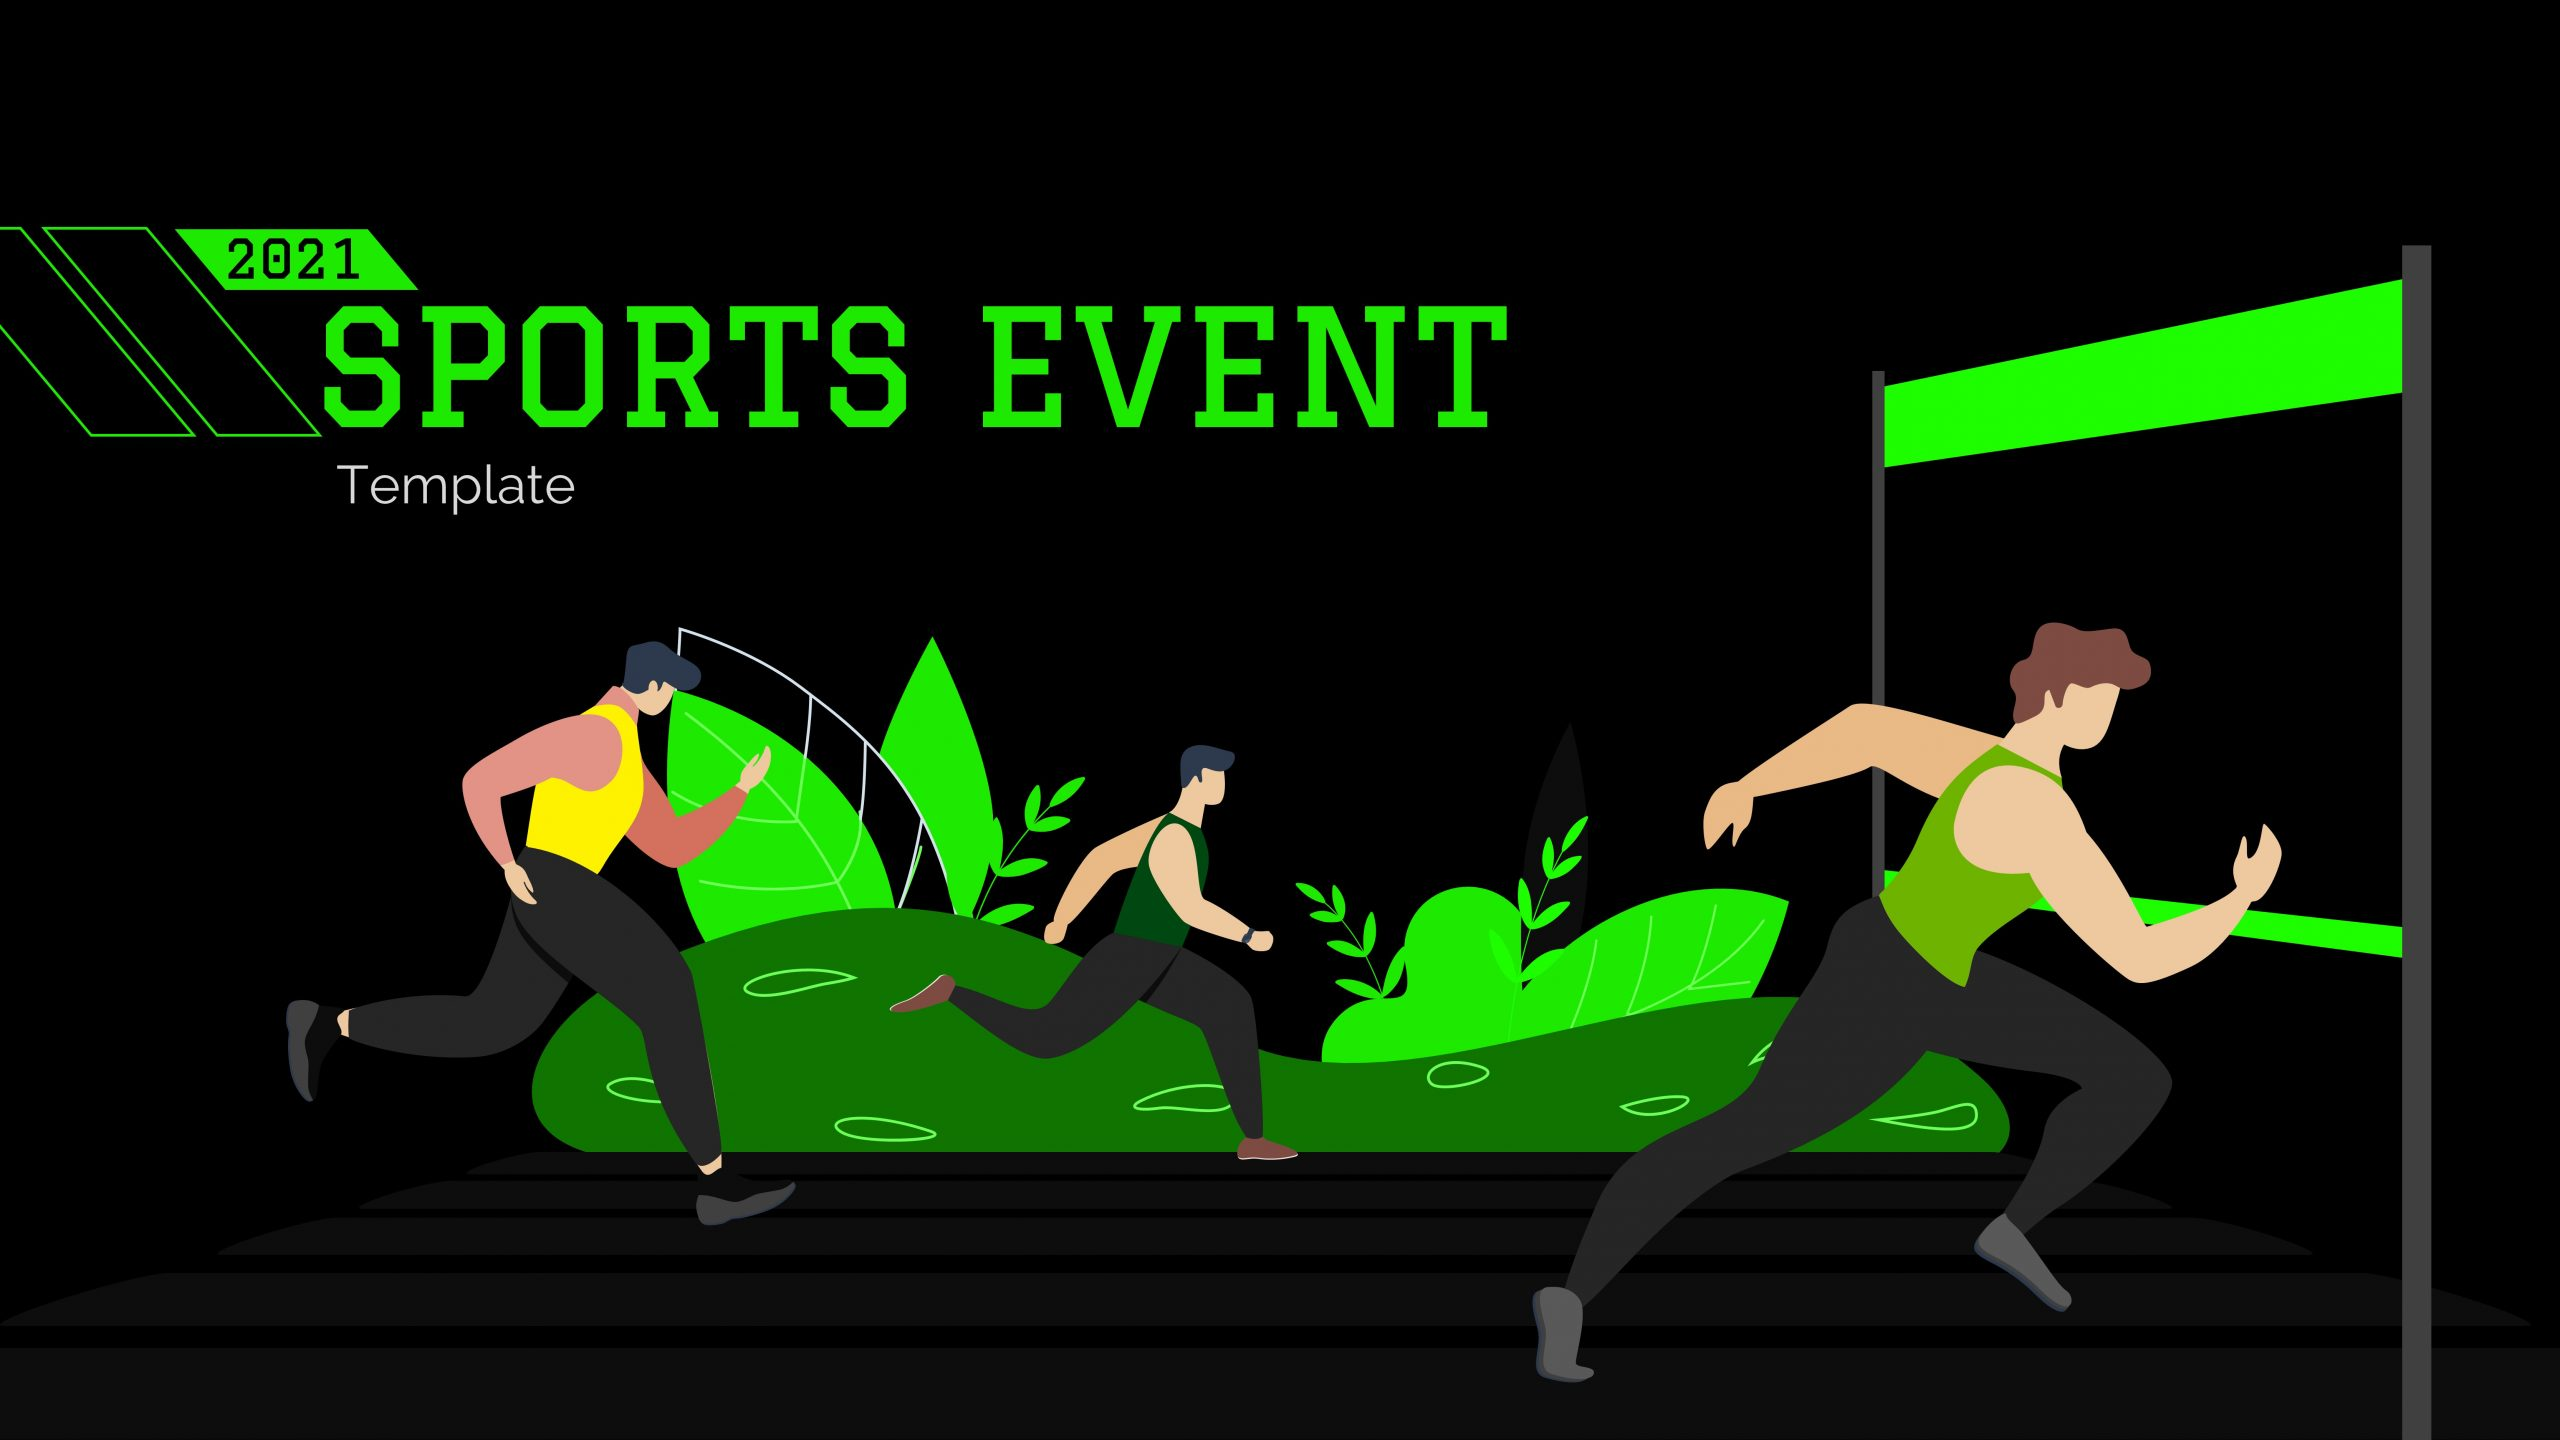 Free presentation template of Sports